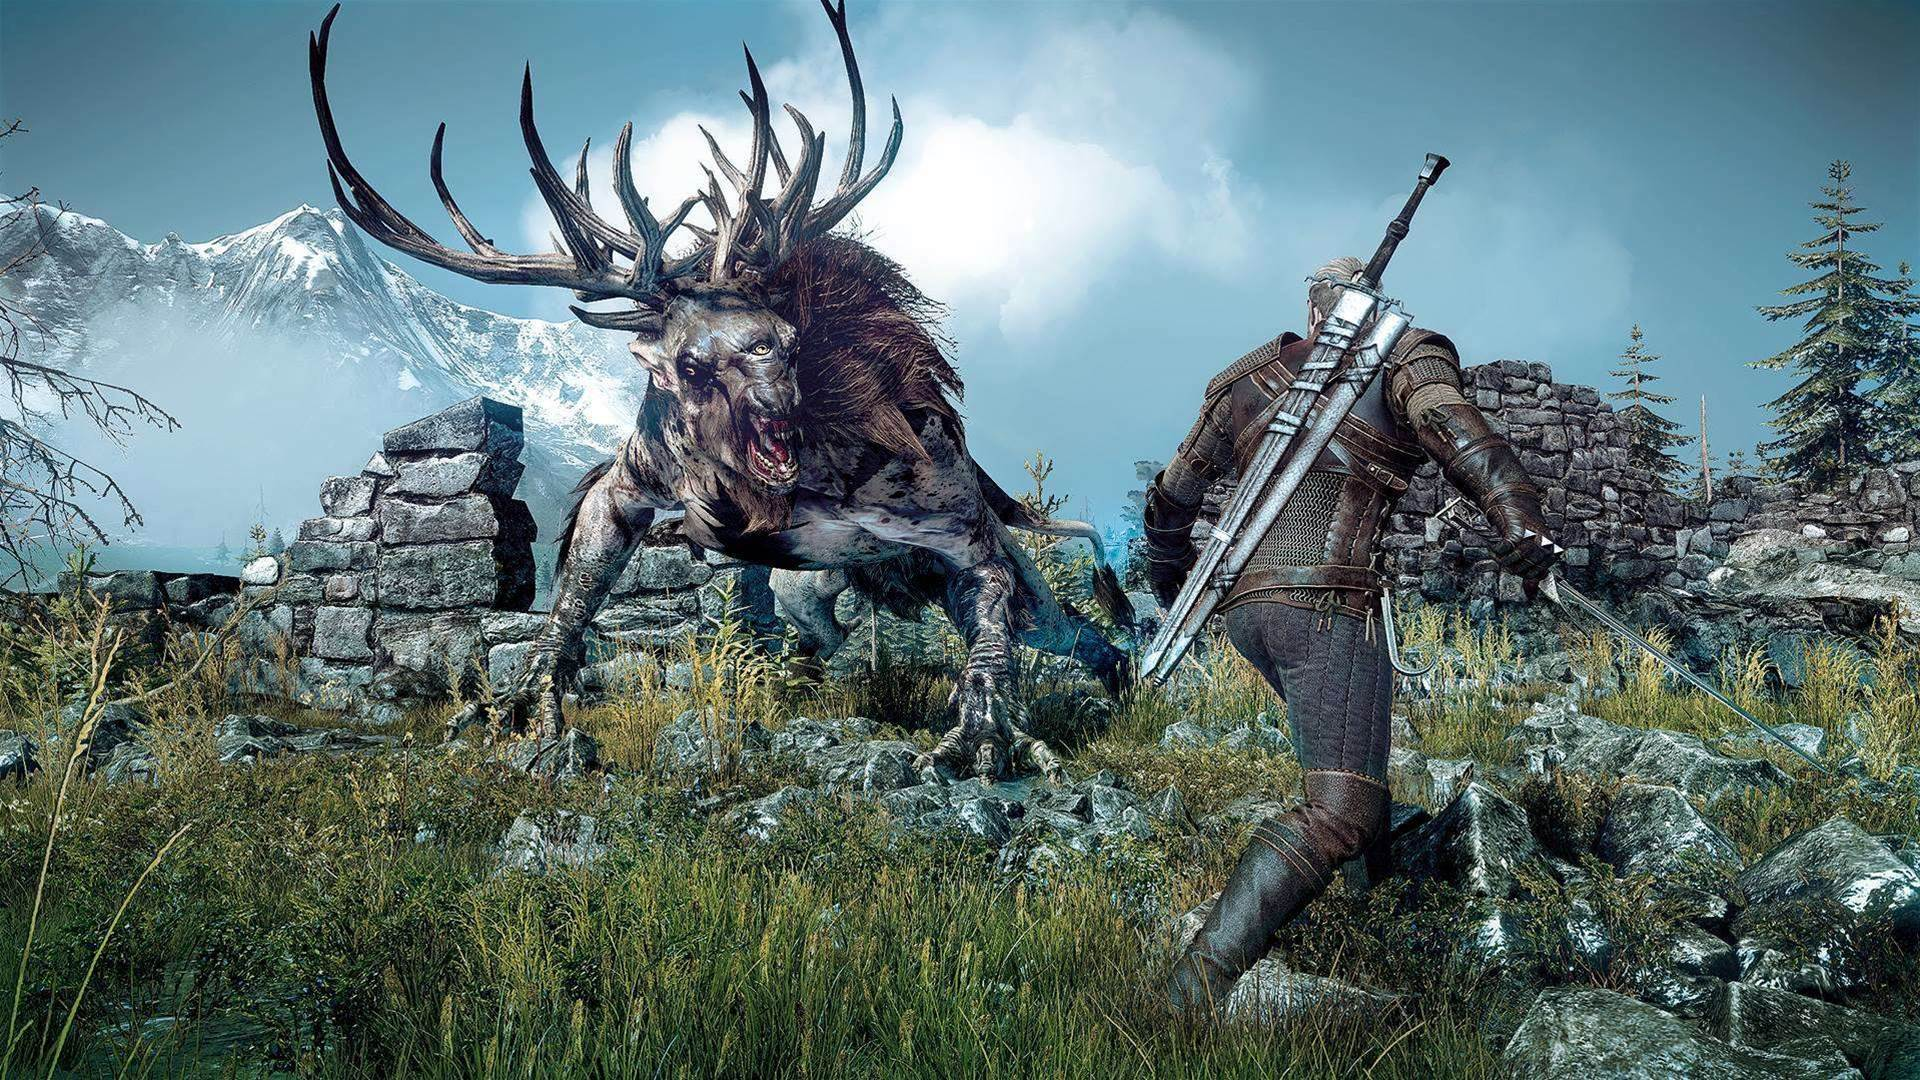 The Witcher 3 system specs ahoy!